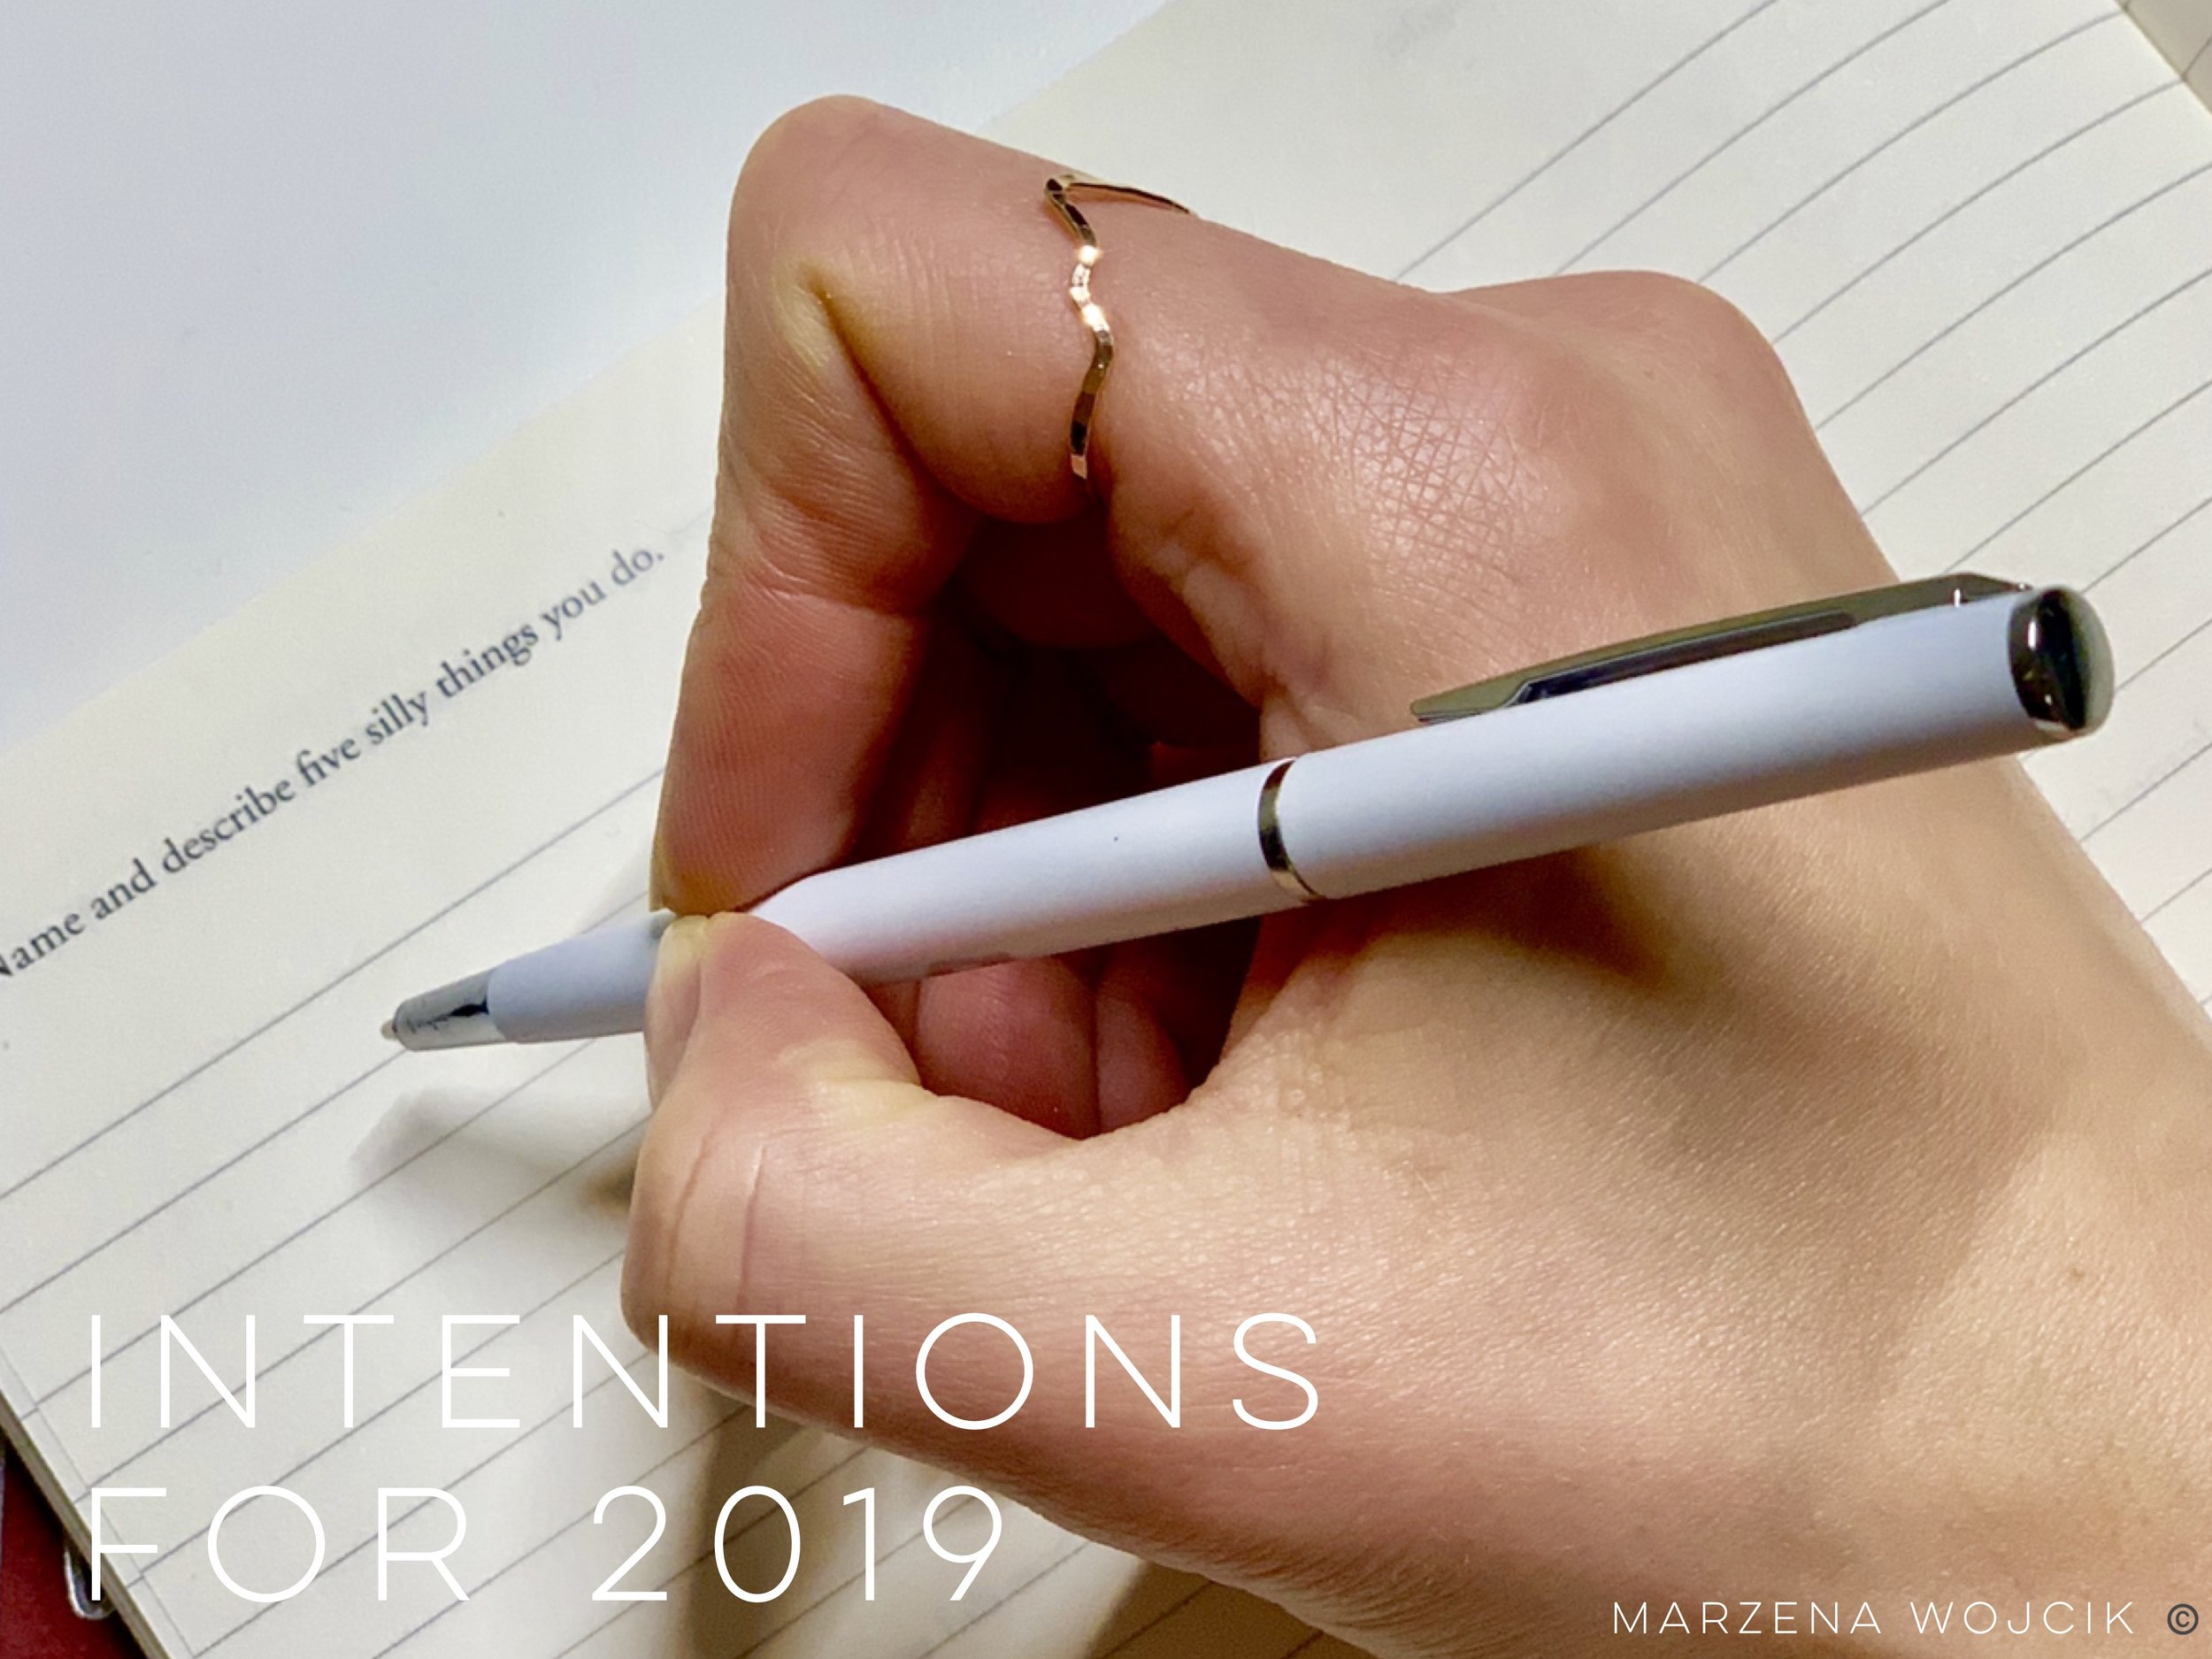 Intentions for 2019